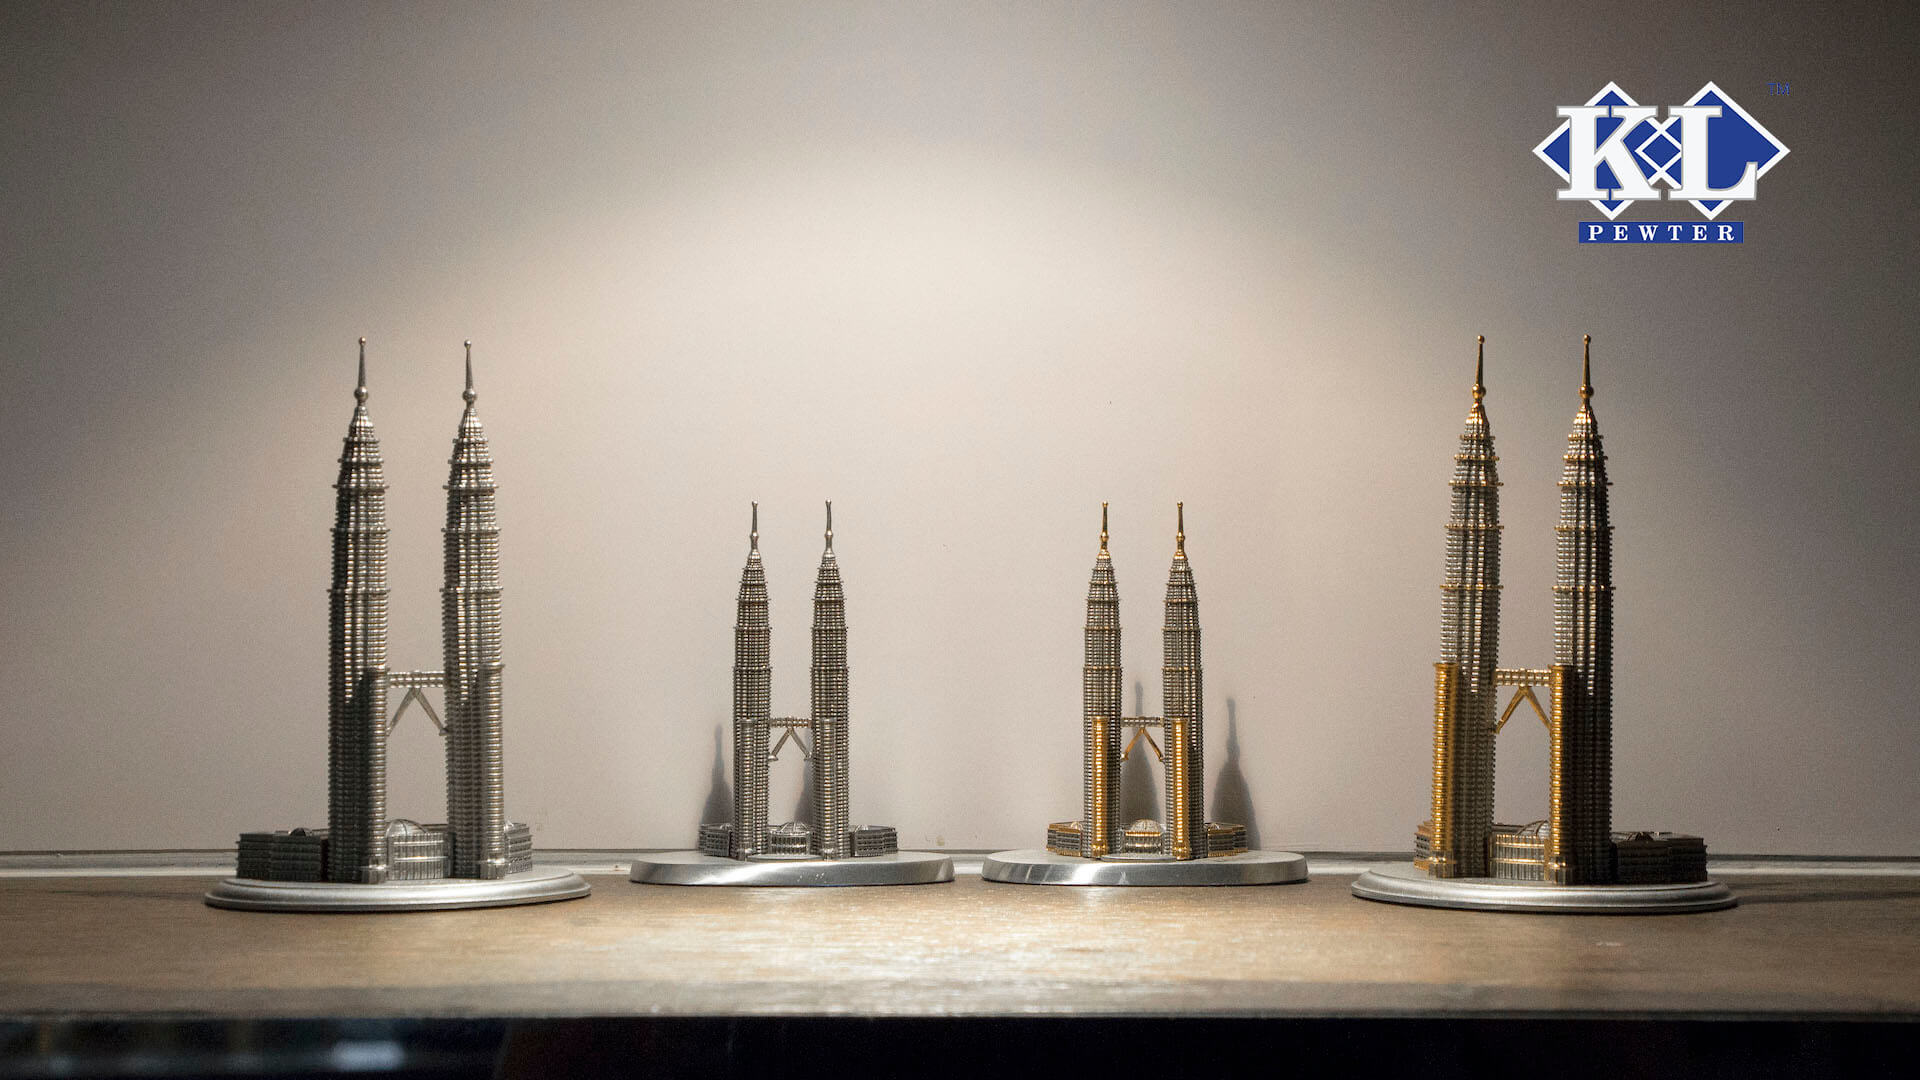 pewter-and-24k-gold-plated-twin-towers-kuala-lumpur-figurines-display